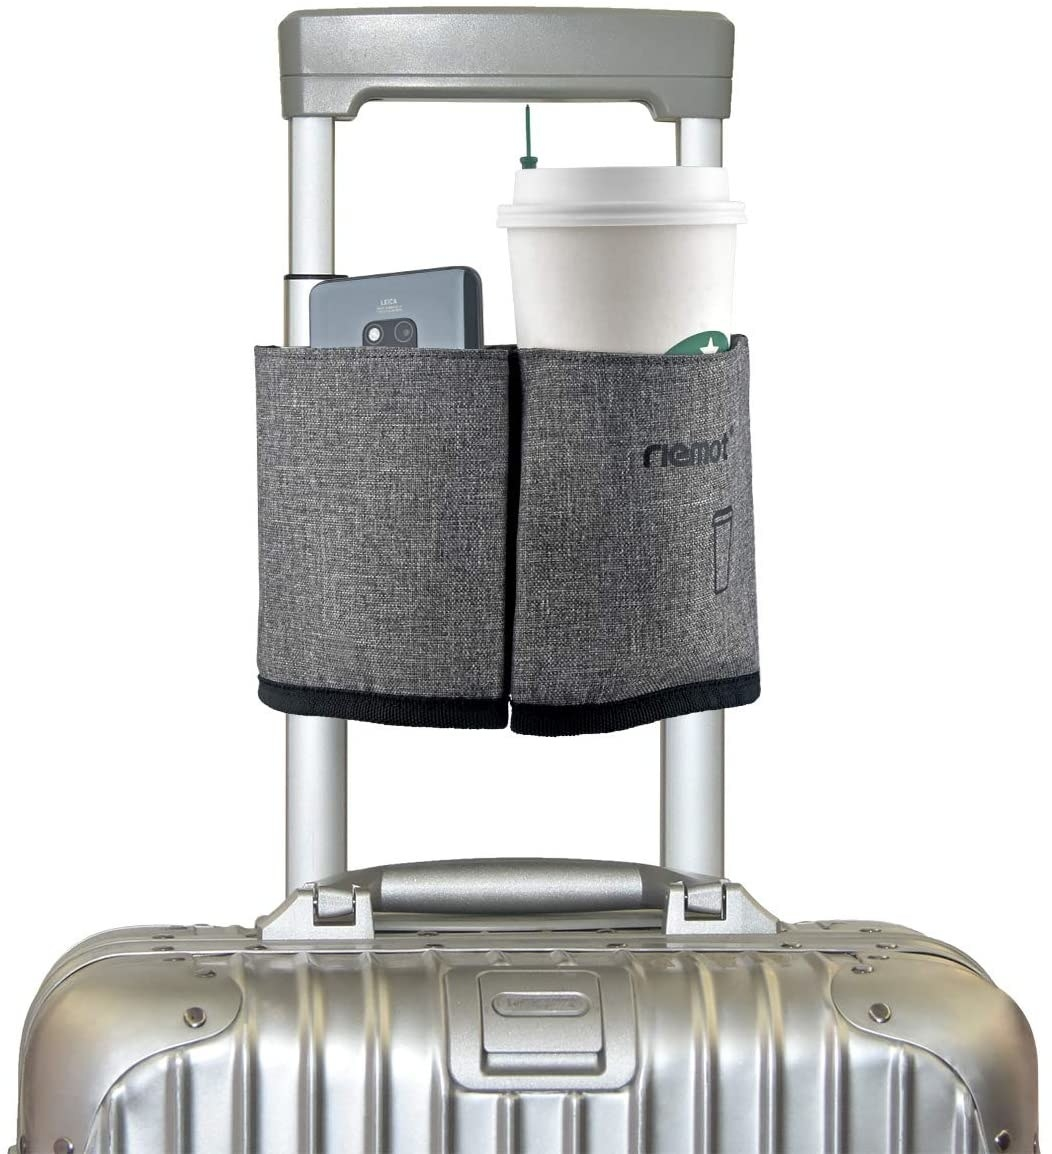 A photo of the gray cup caddy holding a Starbucks coffee and cellphone attached to a carry-on suitcase handle